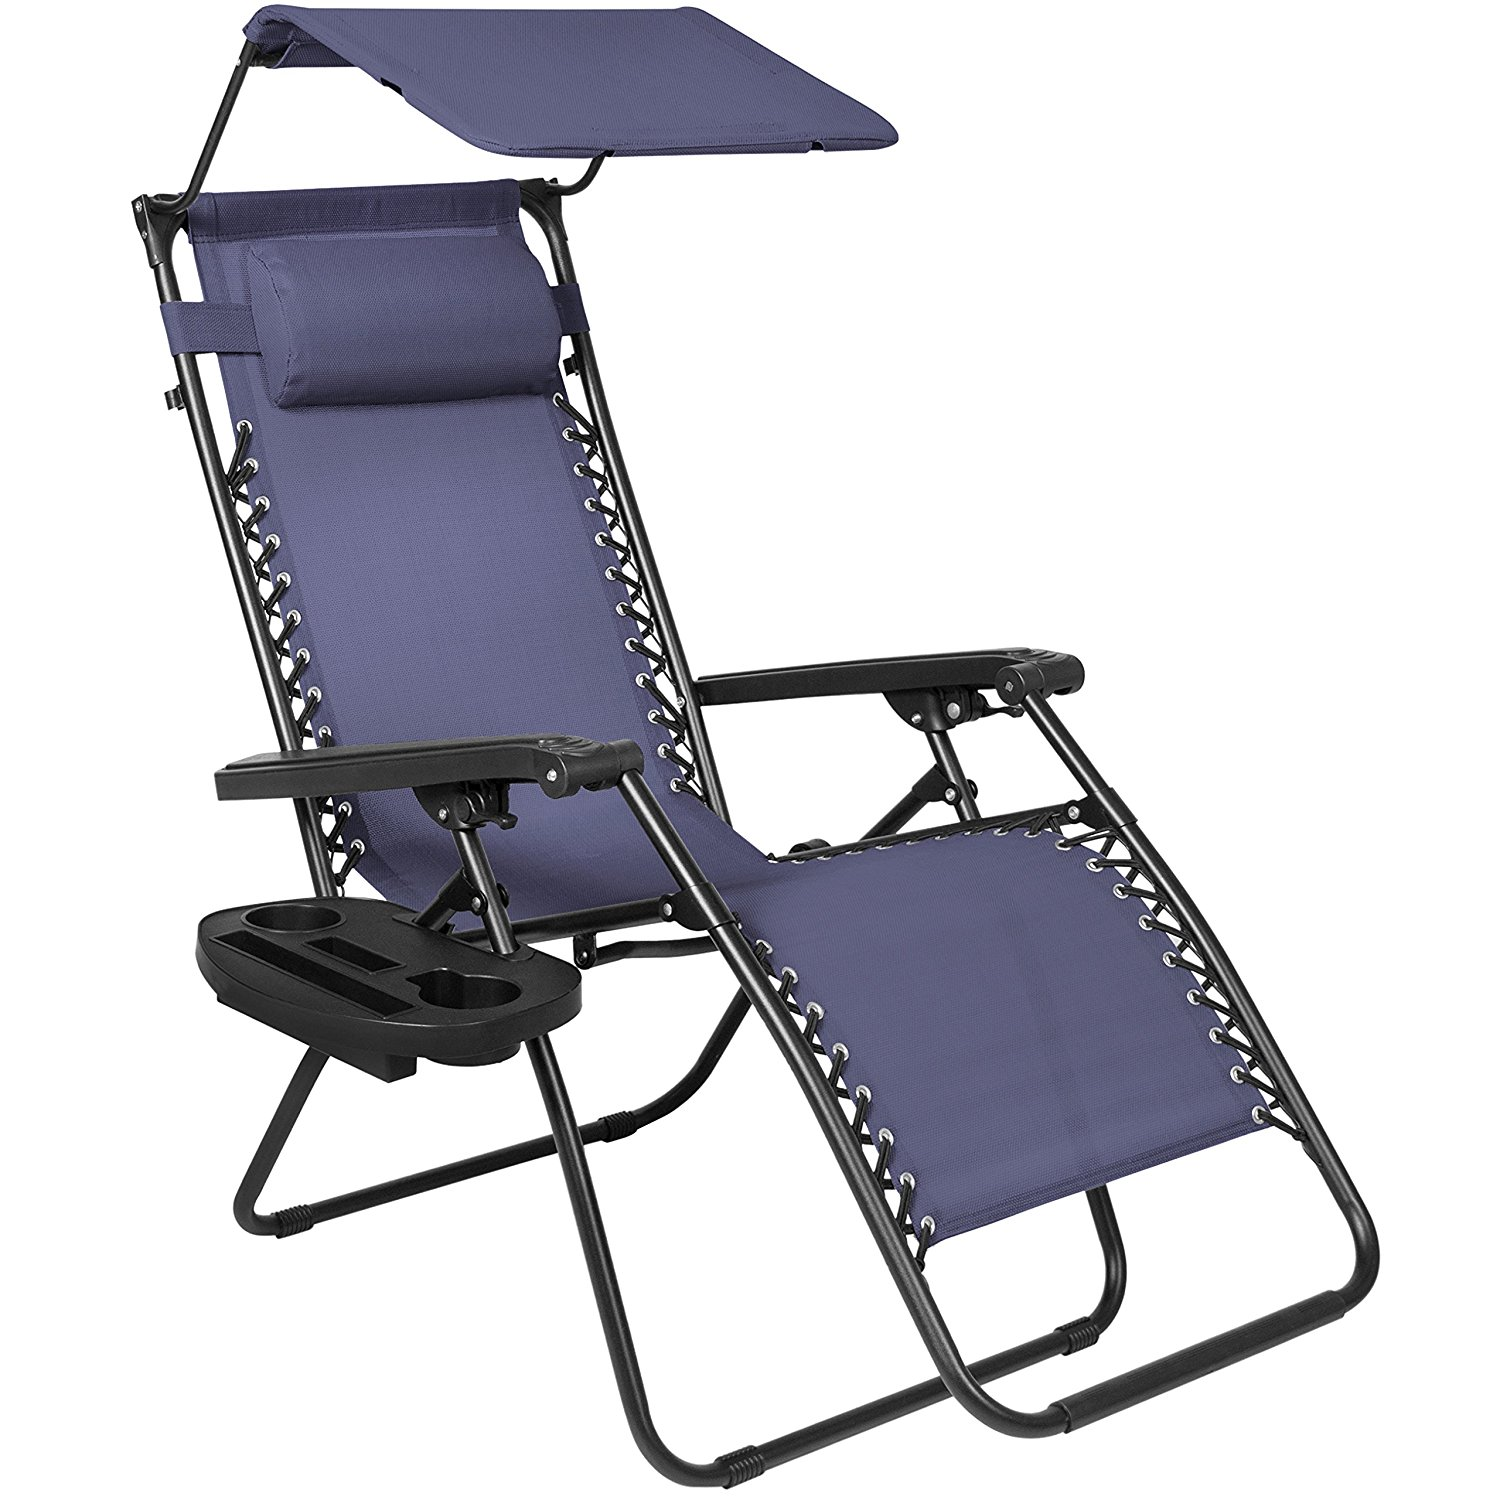 Wholesale folding sun lounger chair with adjustable position sun lounge chair